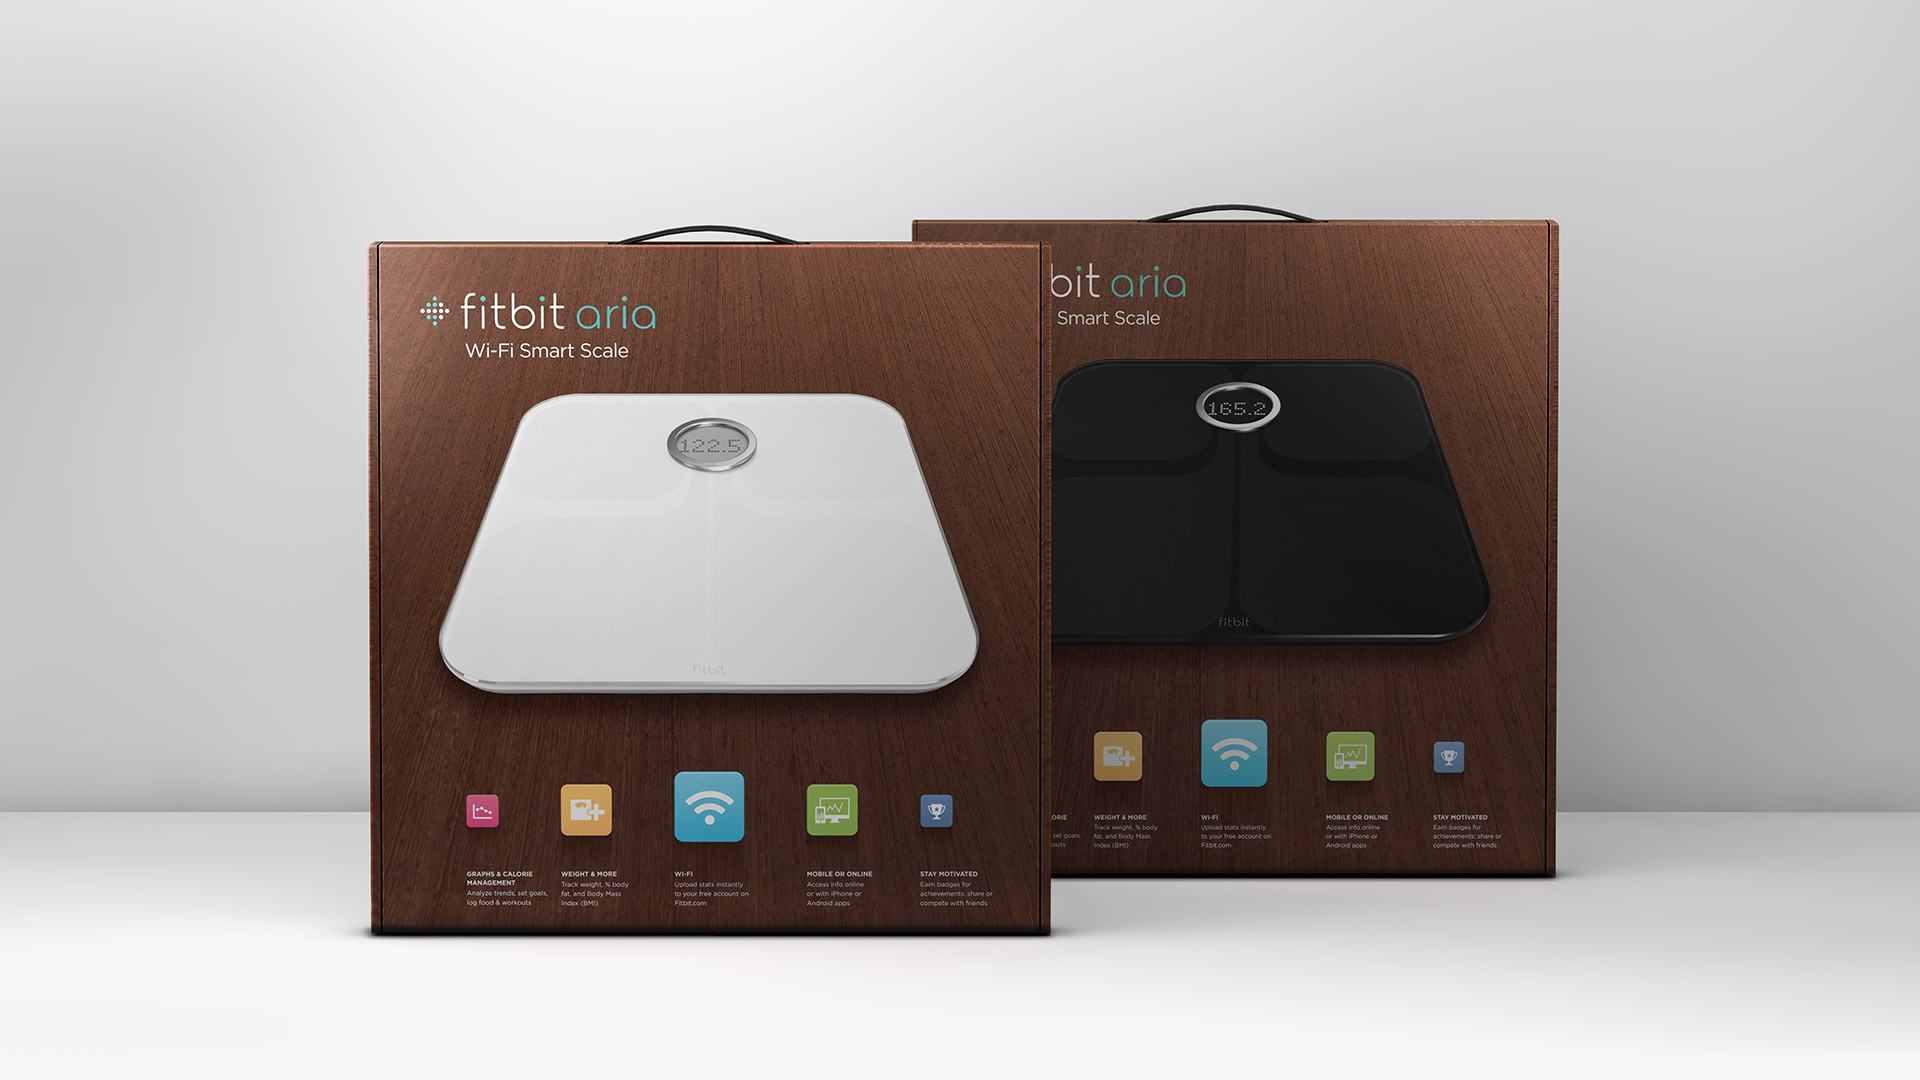 m_Fitbit_aria_packaging